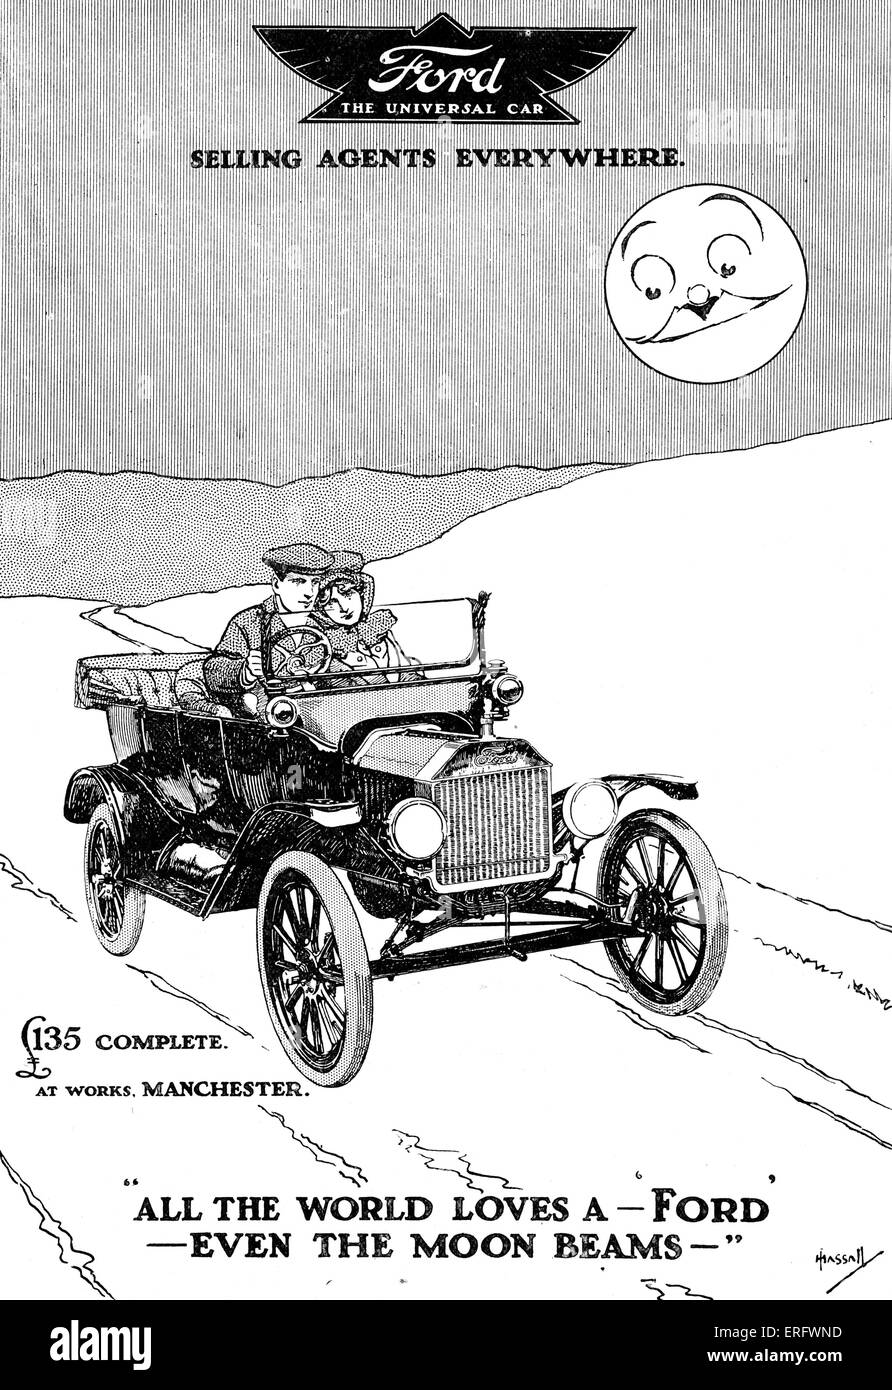 Caption all the world loves a ford even the moon beams ford motor company manufacturer of